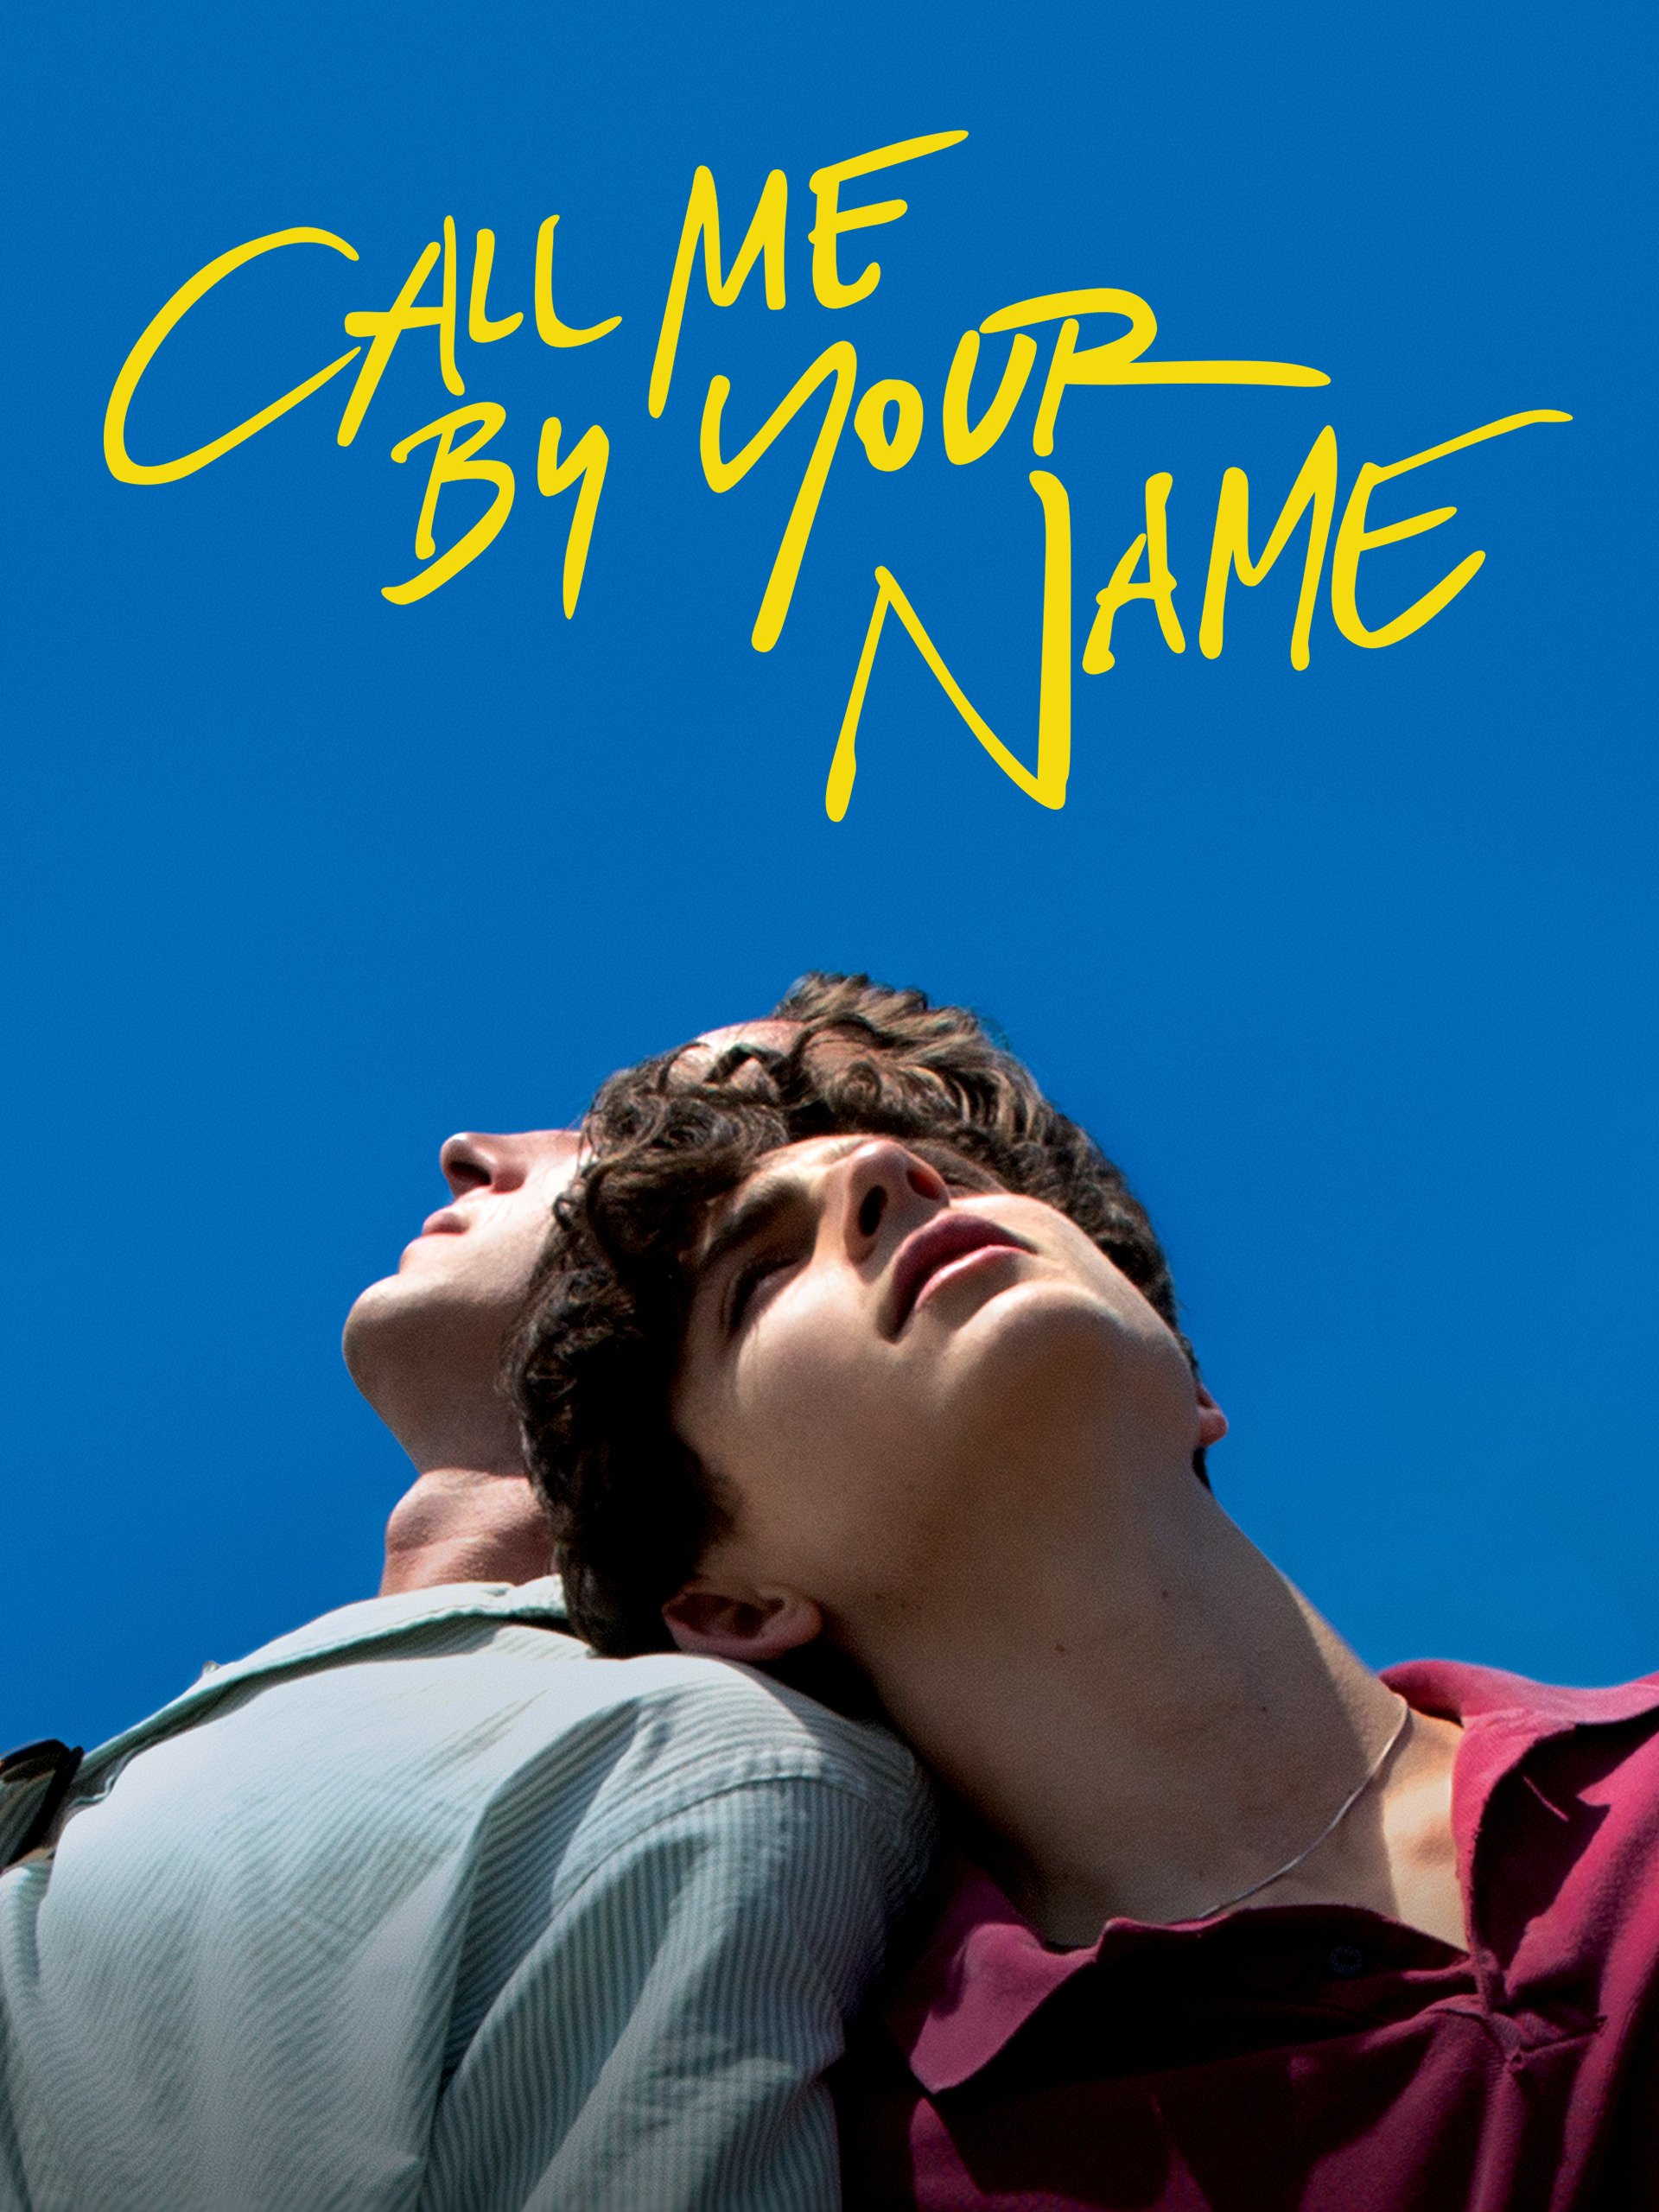 stream watch your name episodes online.html